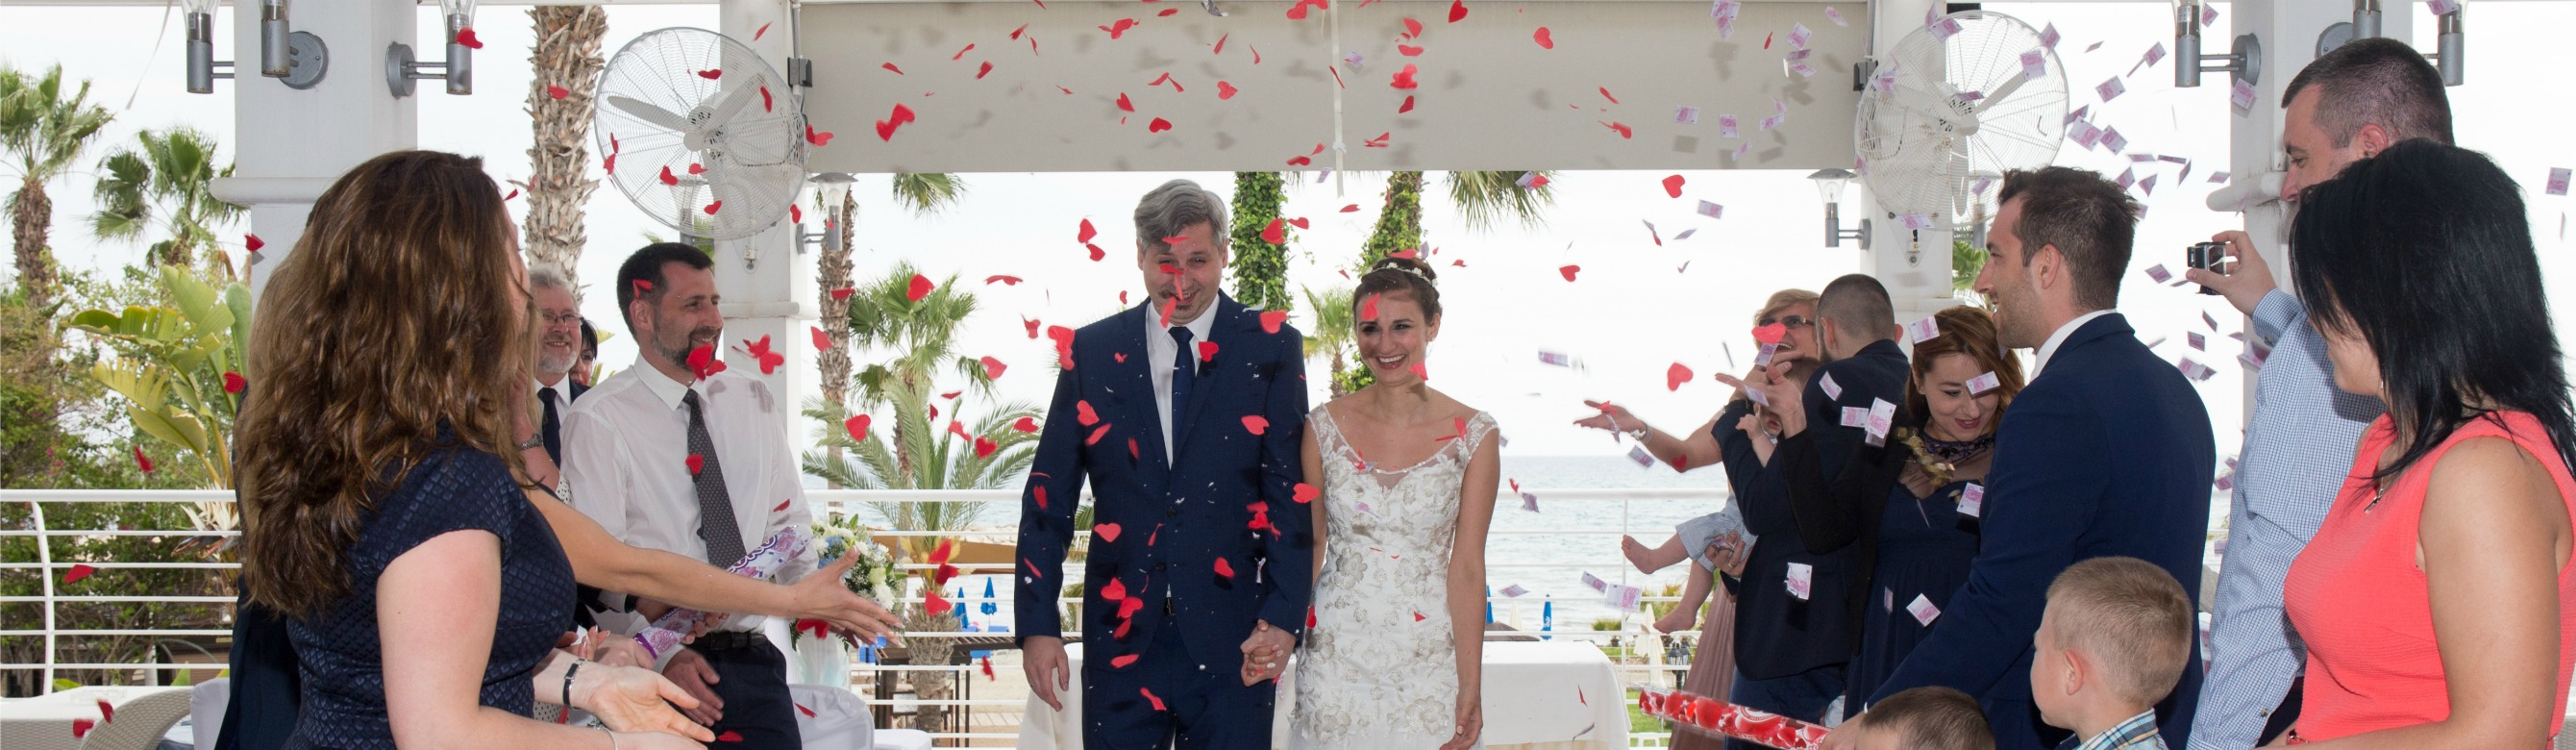 Book your wedding day in Lordos Beach Hotel Larnaca